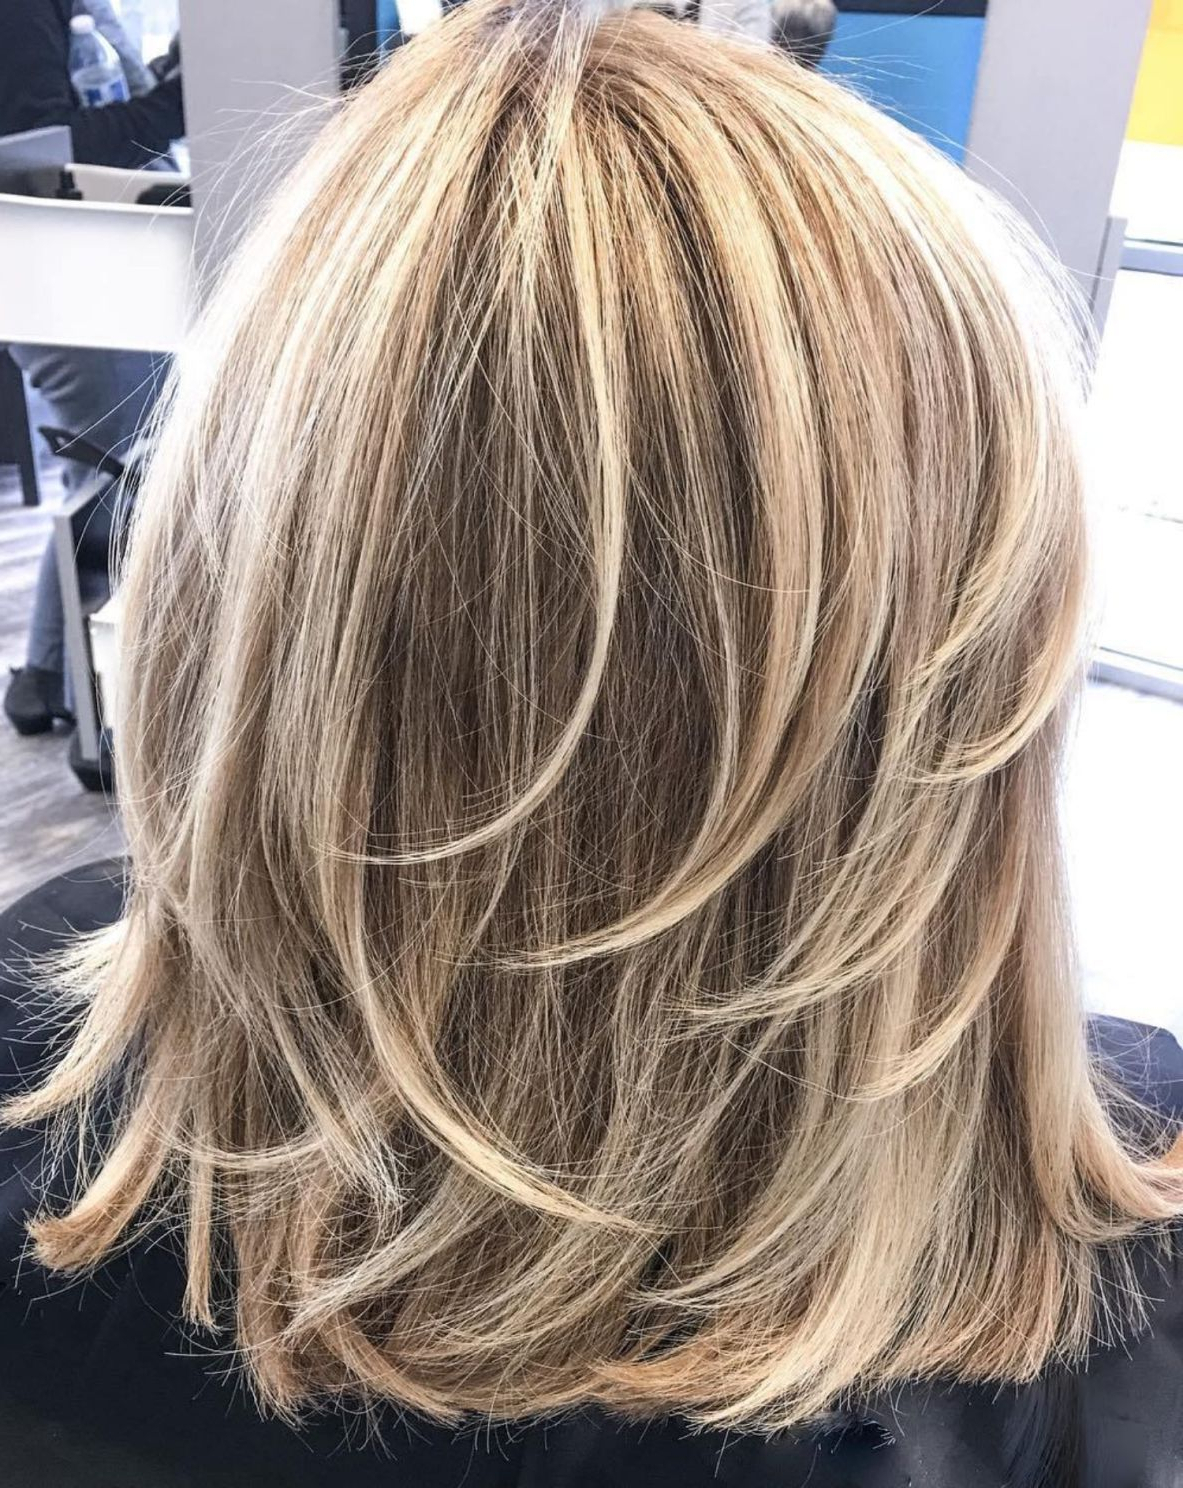 60 Fun And Flattering Medium Hairstyles For Women In 2019 With Regard To Well Liked Thick Feathered Blonde Lob Hairstyles (View 7 of 20)